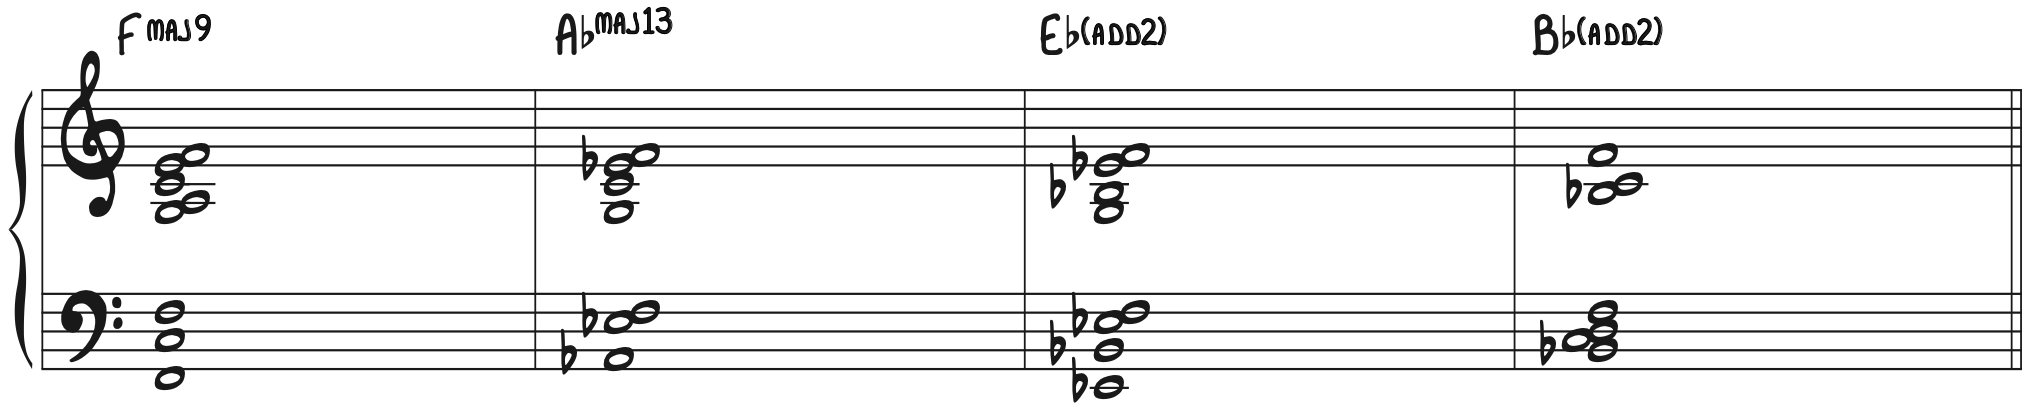 Hans Zimmer Chord Progression with Extensions